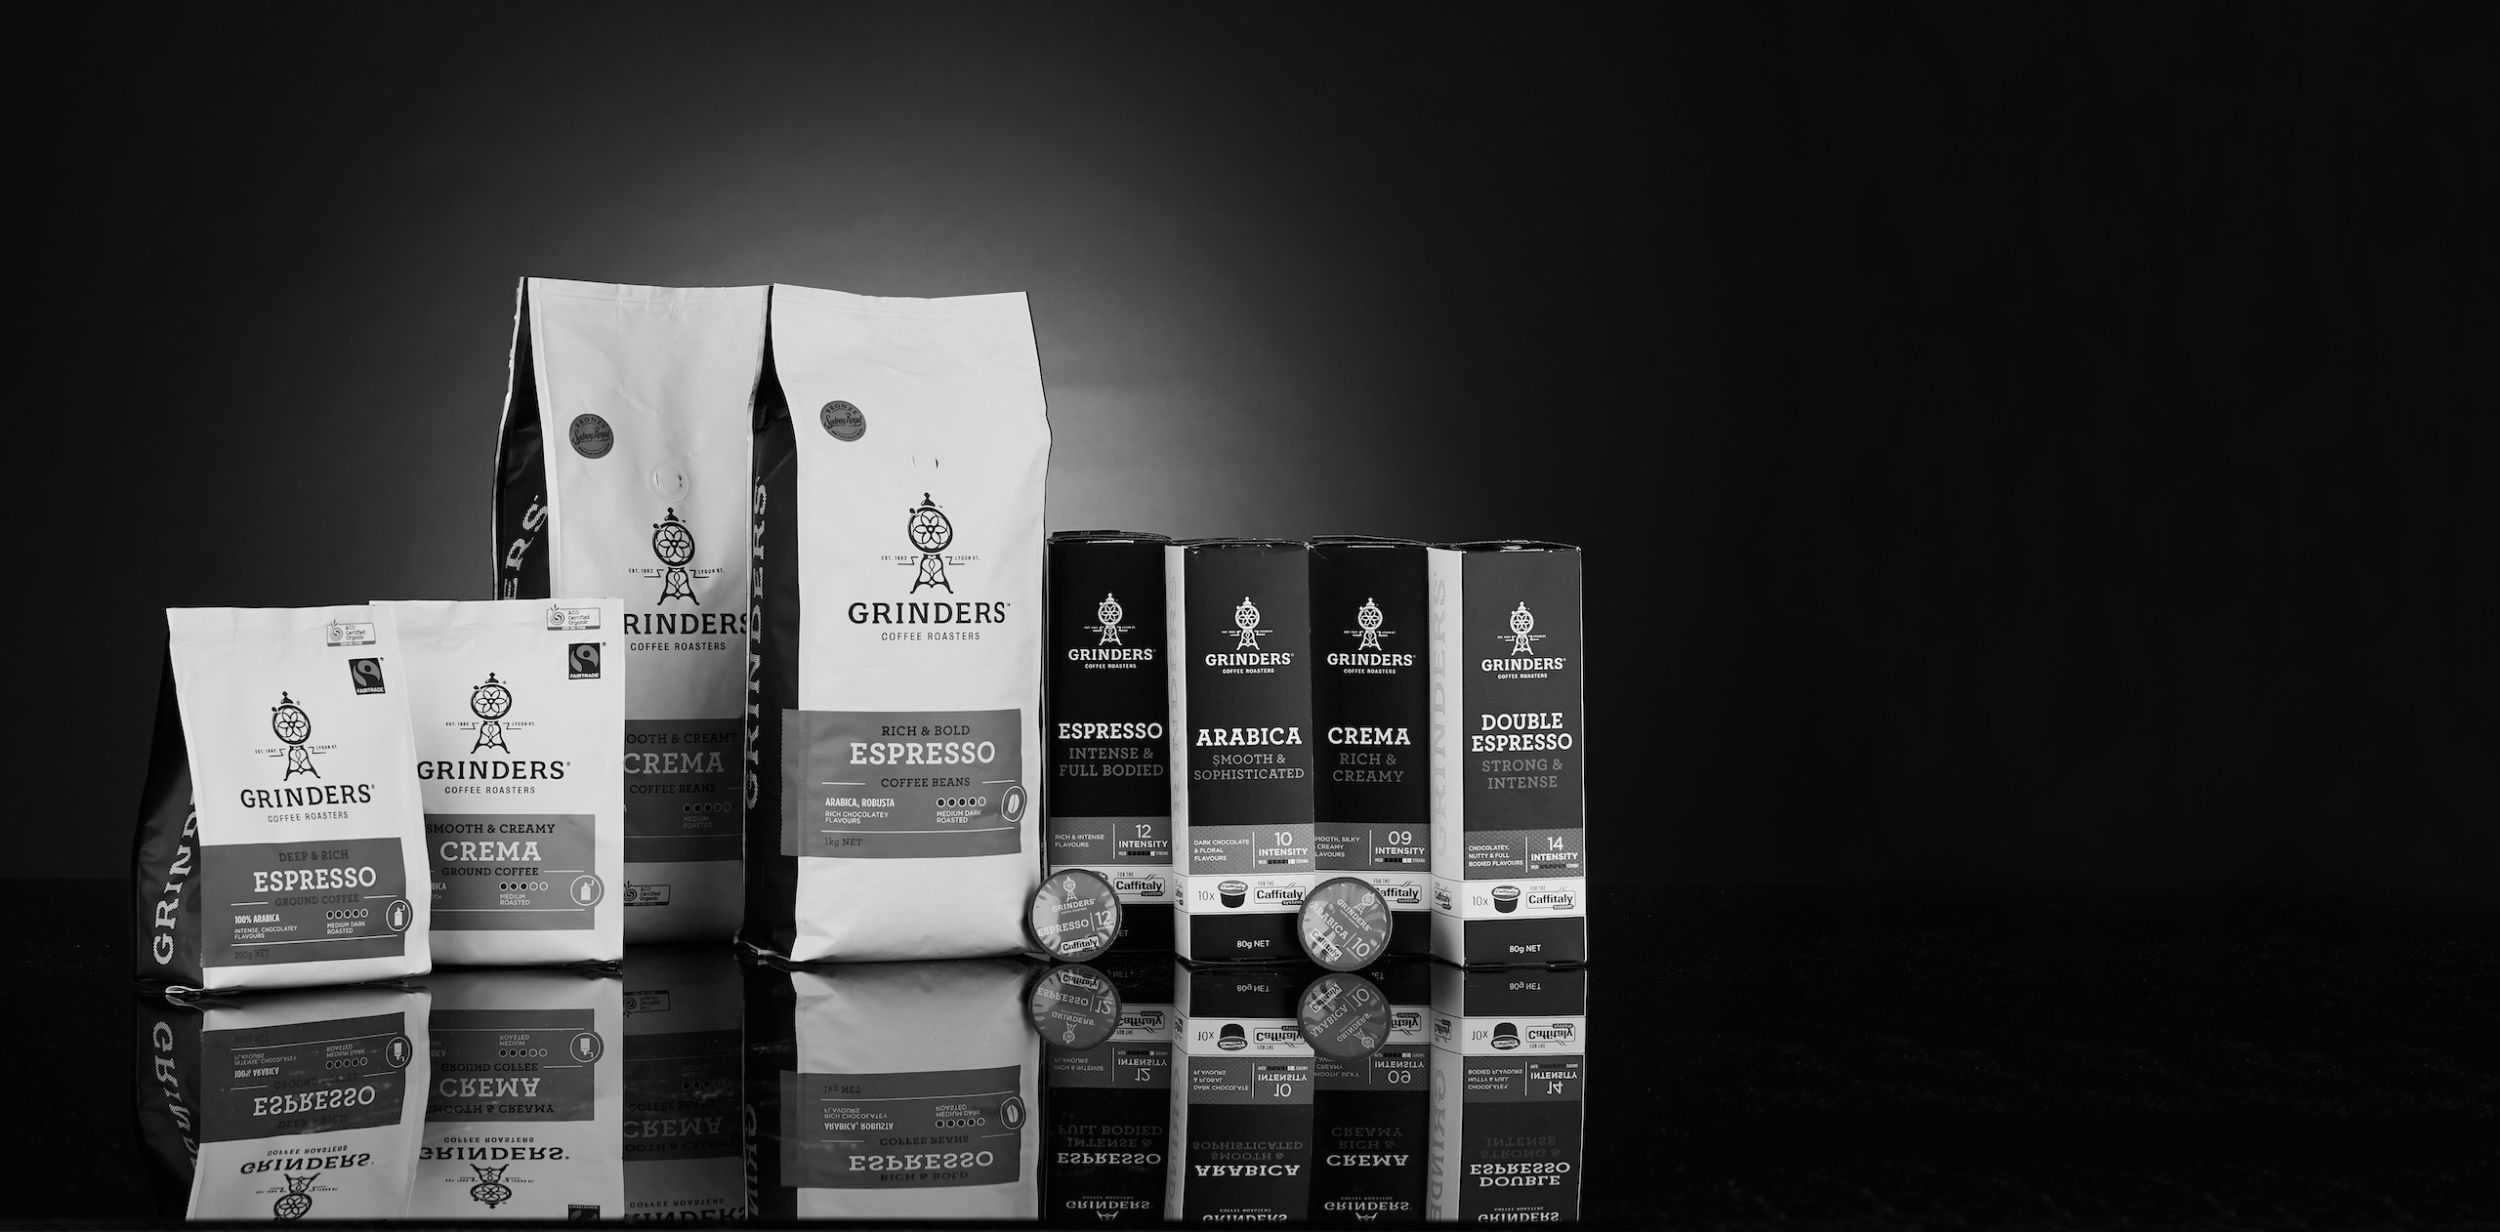 Grinders Coffee packs in black and white